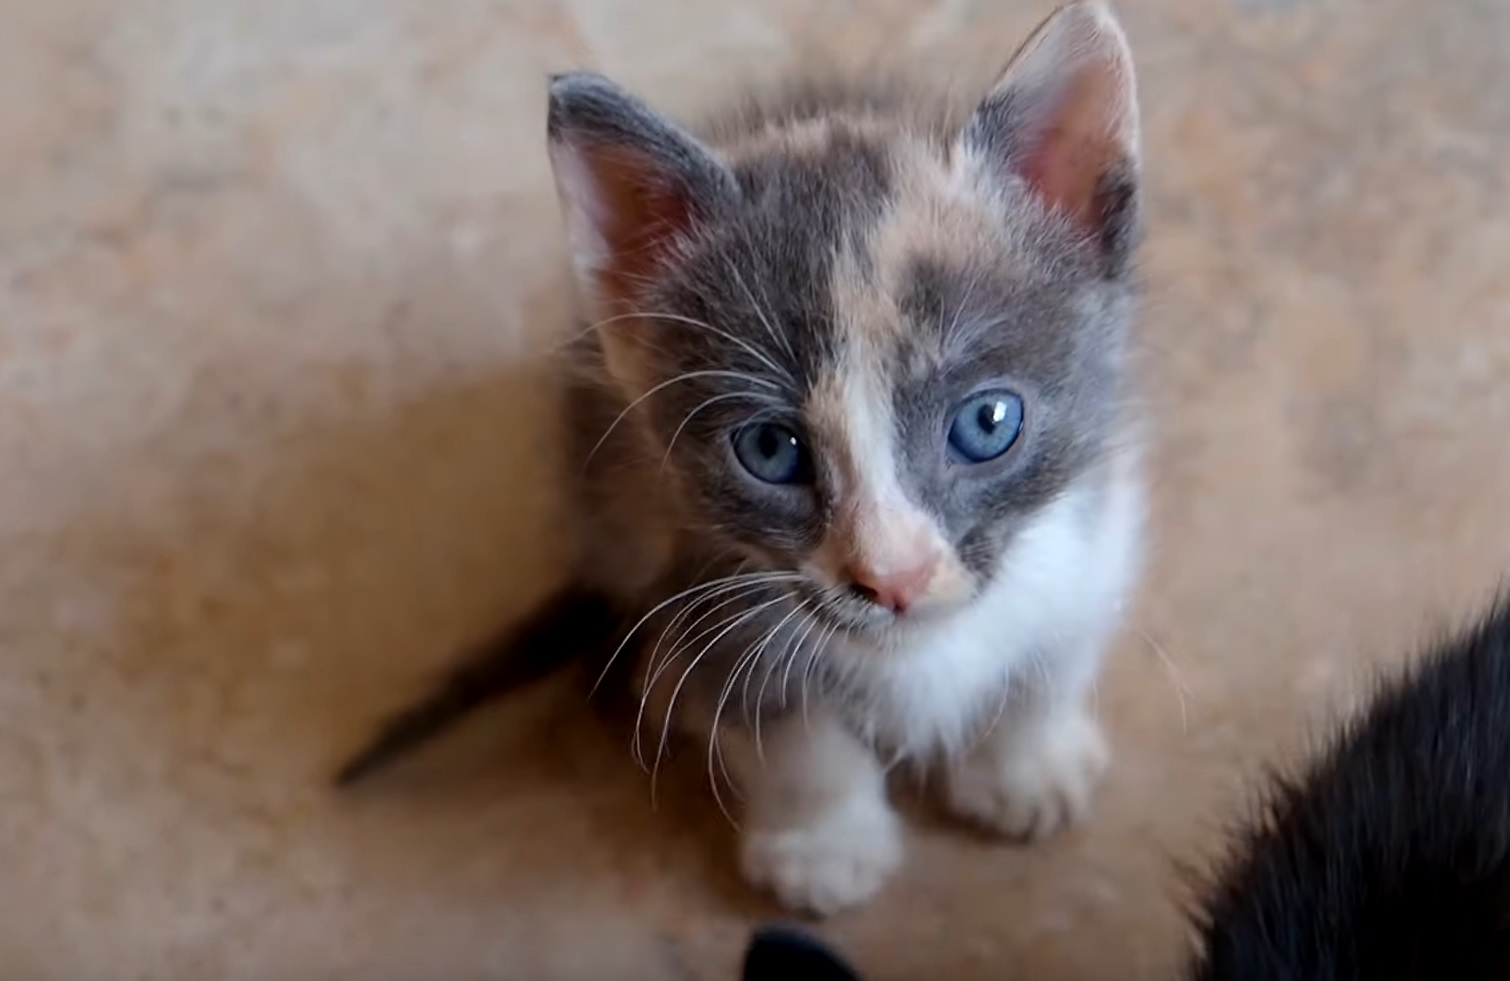 This Rescued Kitten Has Most Beautiful Eyes